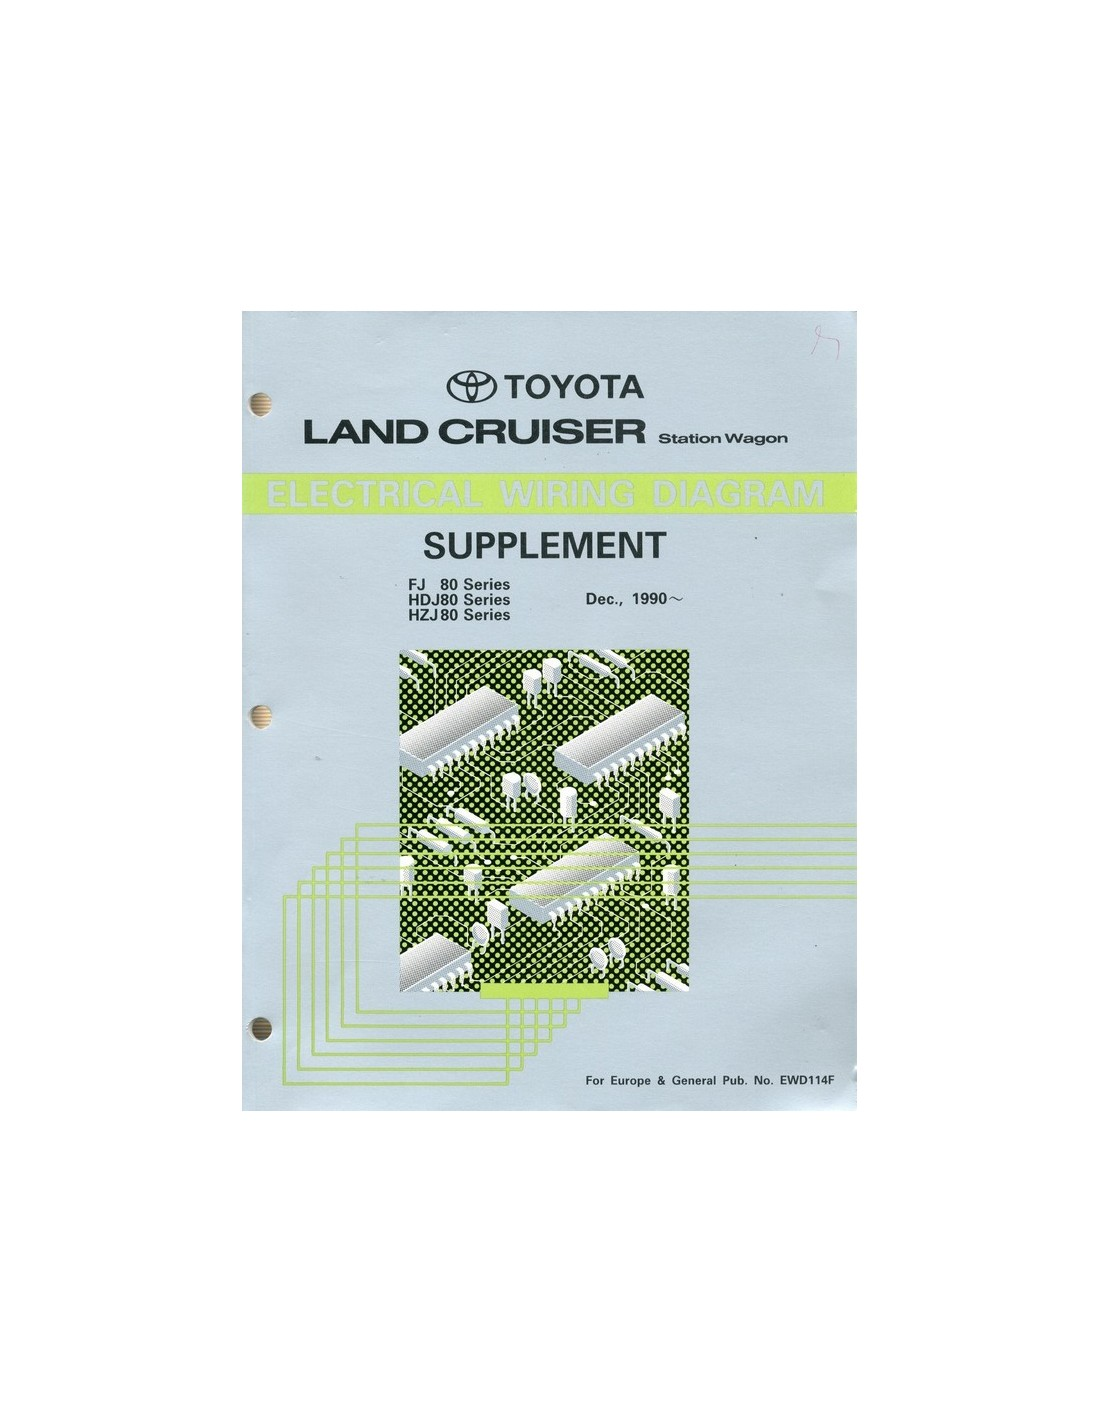 wiring diagram ford f series 1990 toyota landcruiser station wagon supplement ... #15